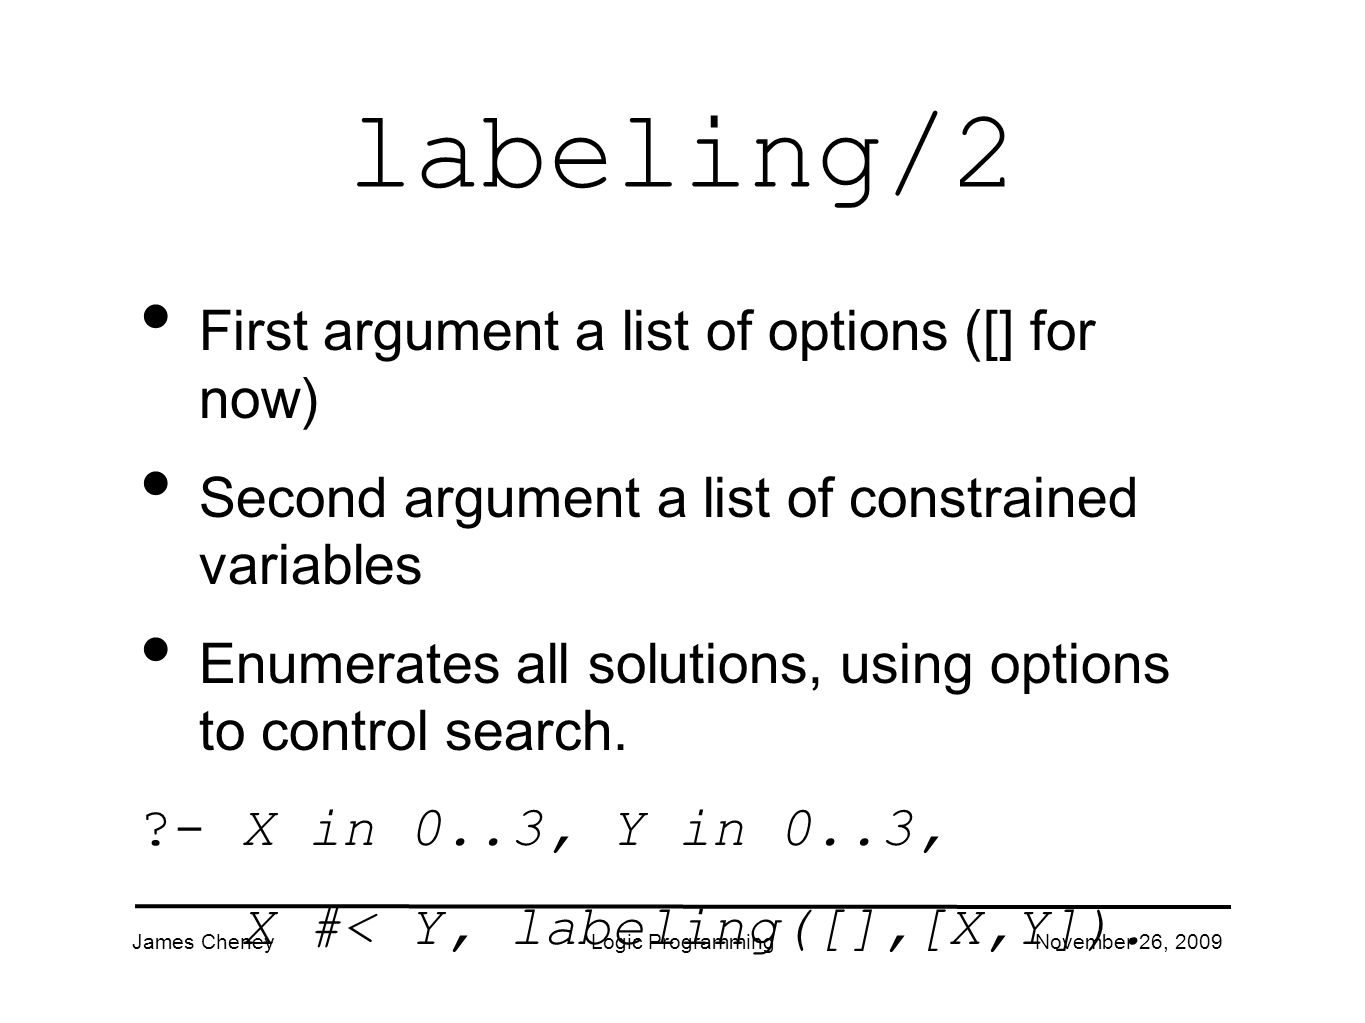 James CheneyLogic ProgrammingNovember 26, 2009 labeling/2 First argument a list of options ([] for now) Second argument a list of constrained variables Enumerates all solutions, using options to control search.